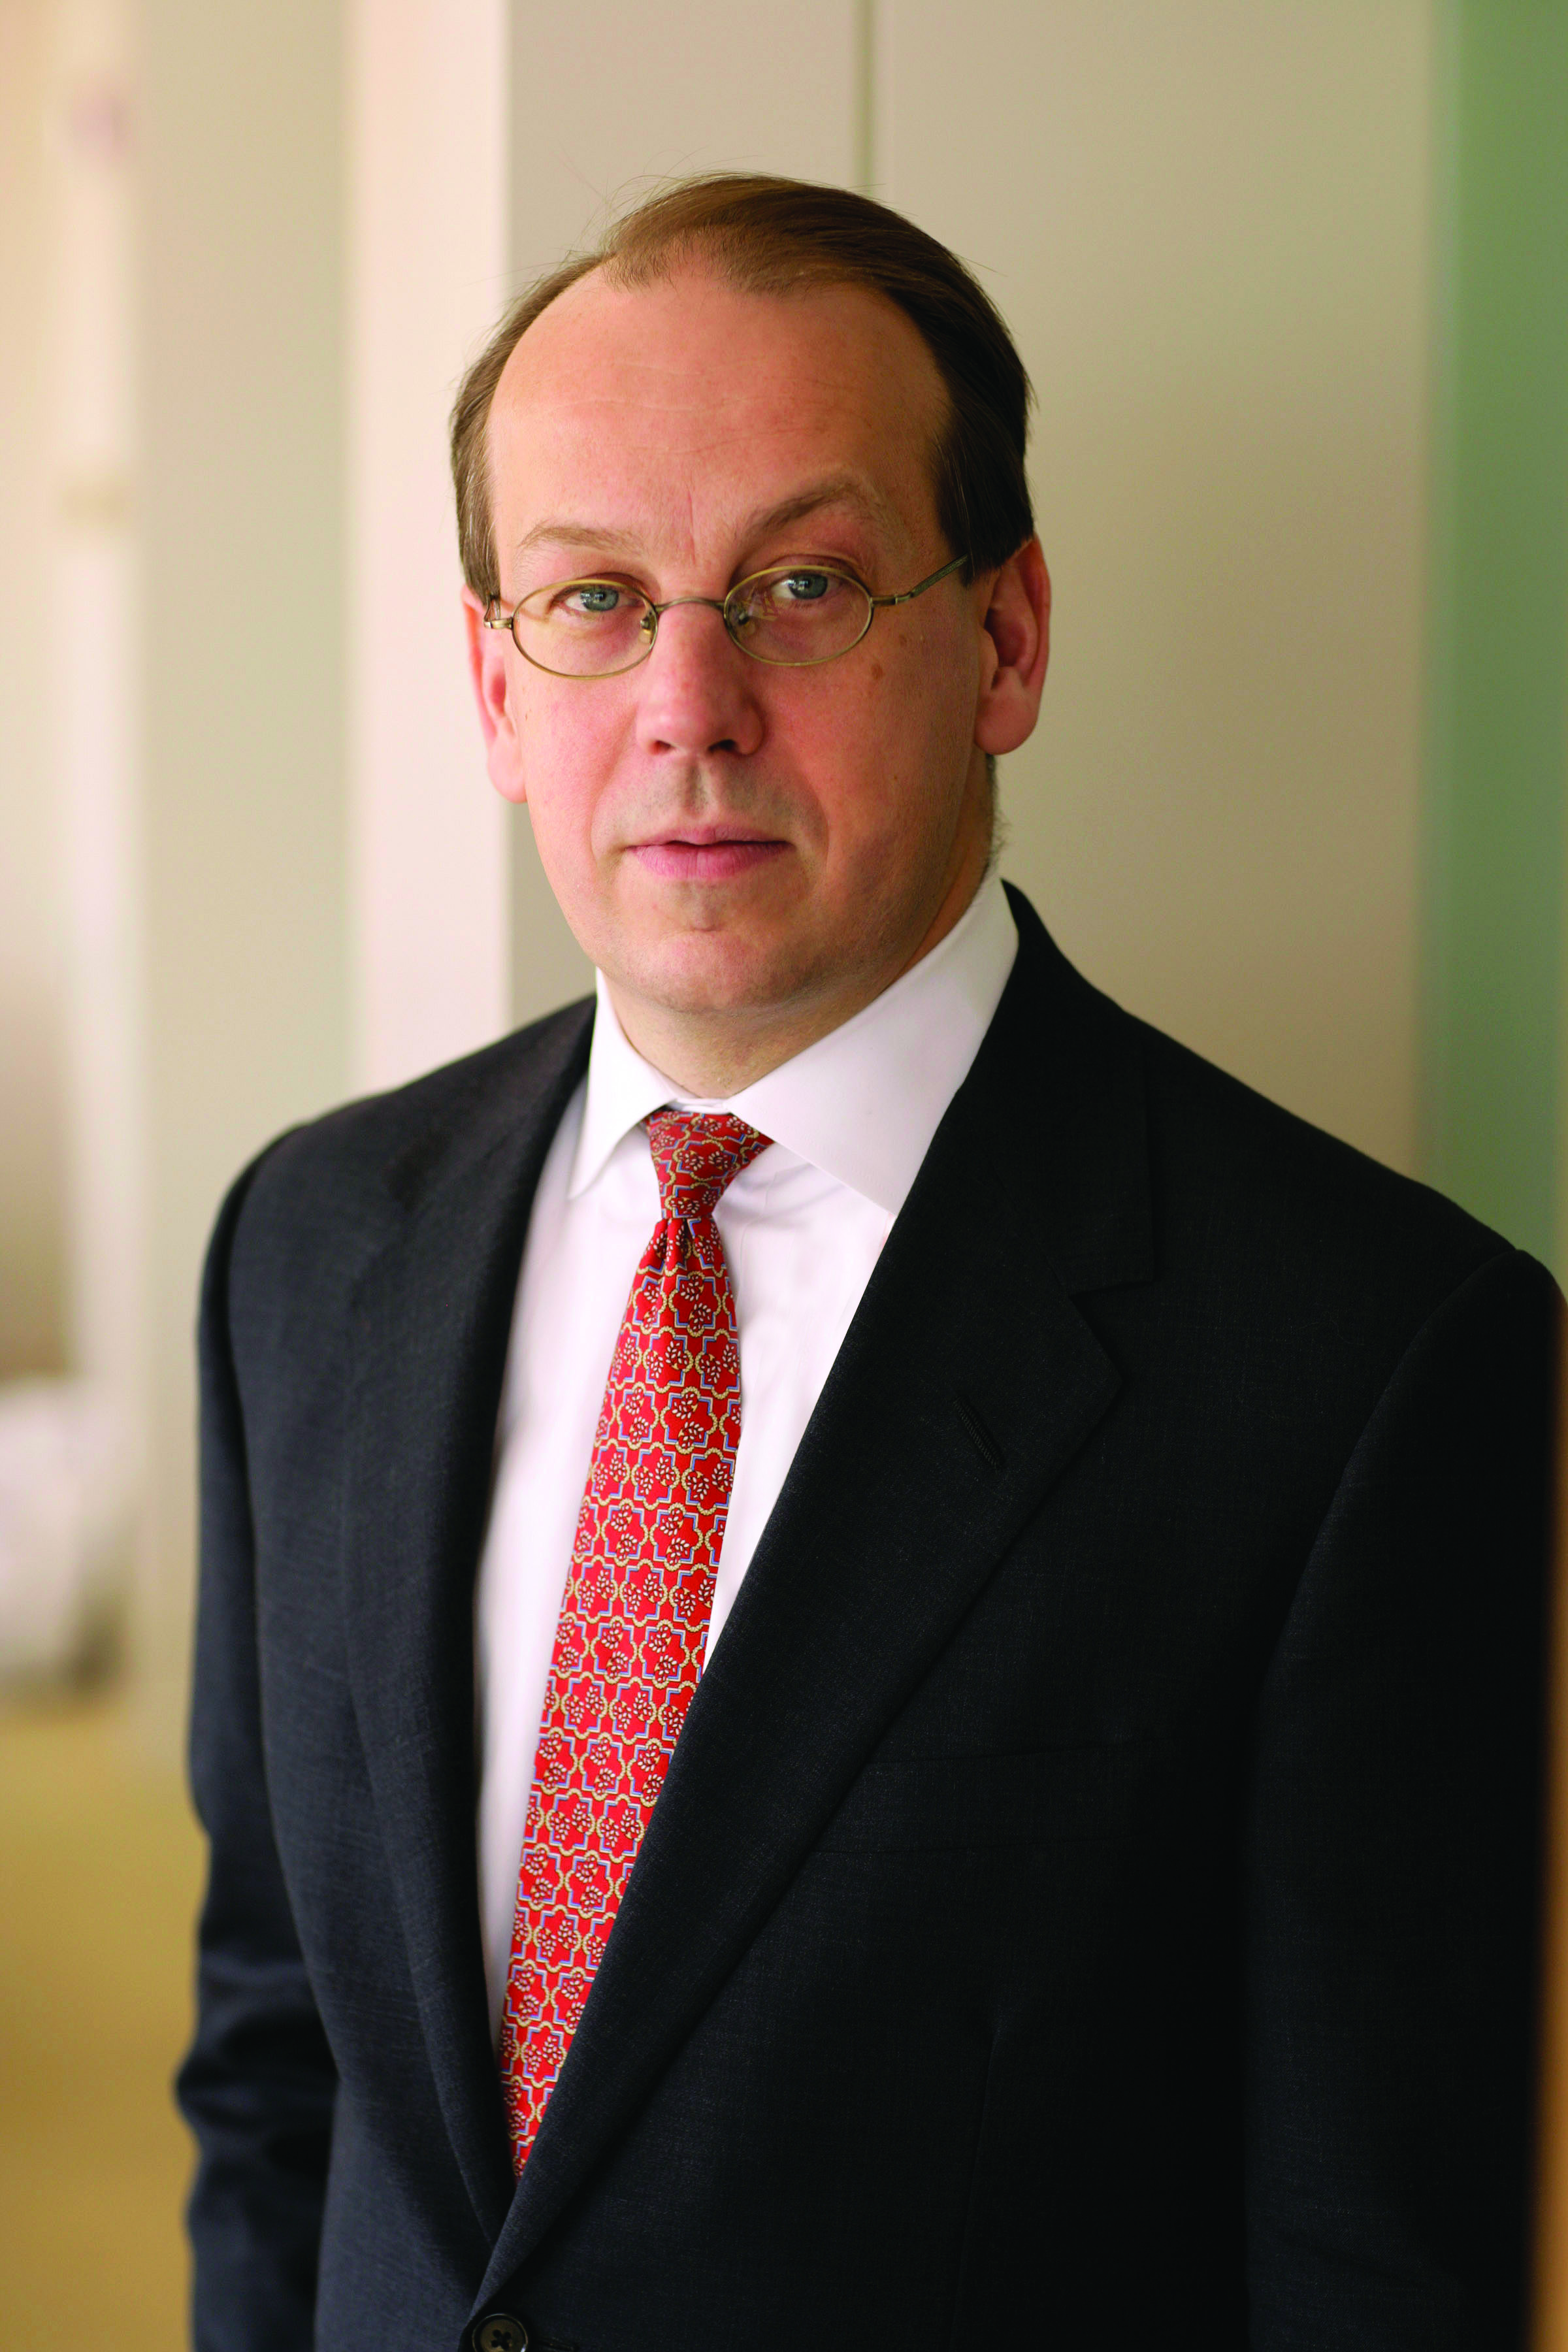 Paul D. Clement, former Solicitor General of the United States